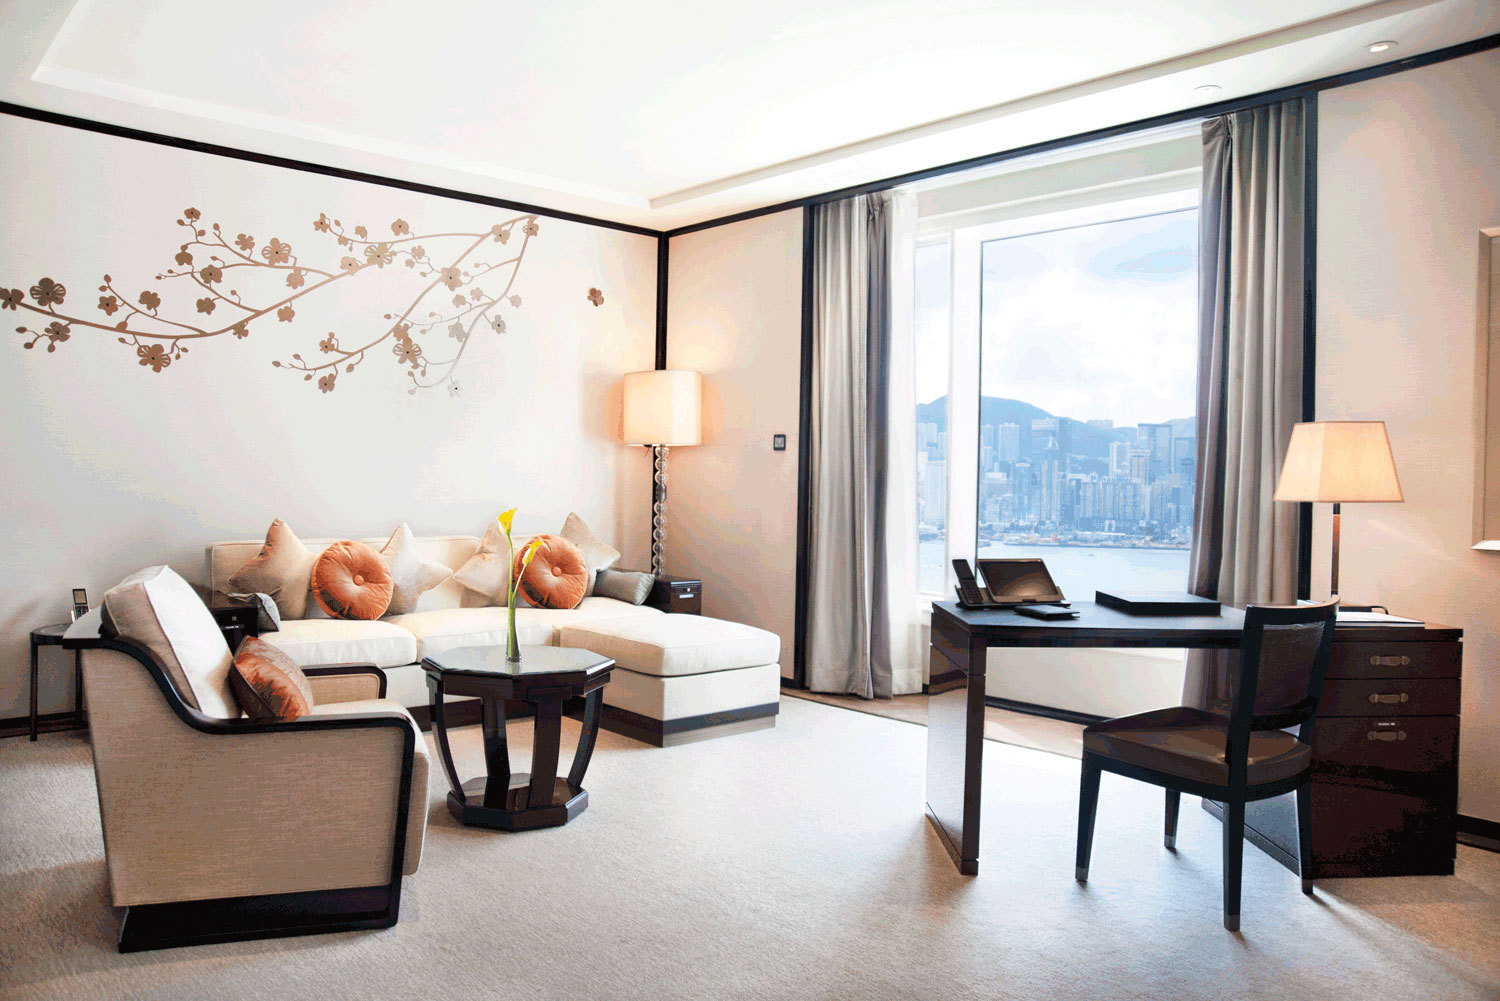 The Peninsula Hong Kong was voted best luxury hotel in International Traveller's Readers' Choice Awards 2015.